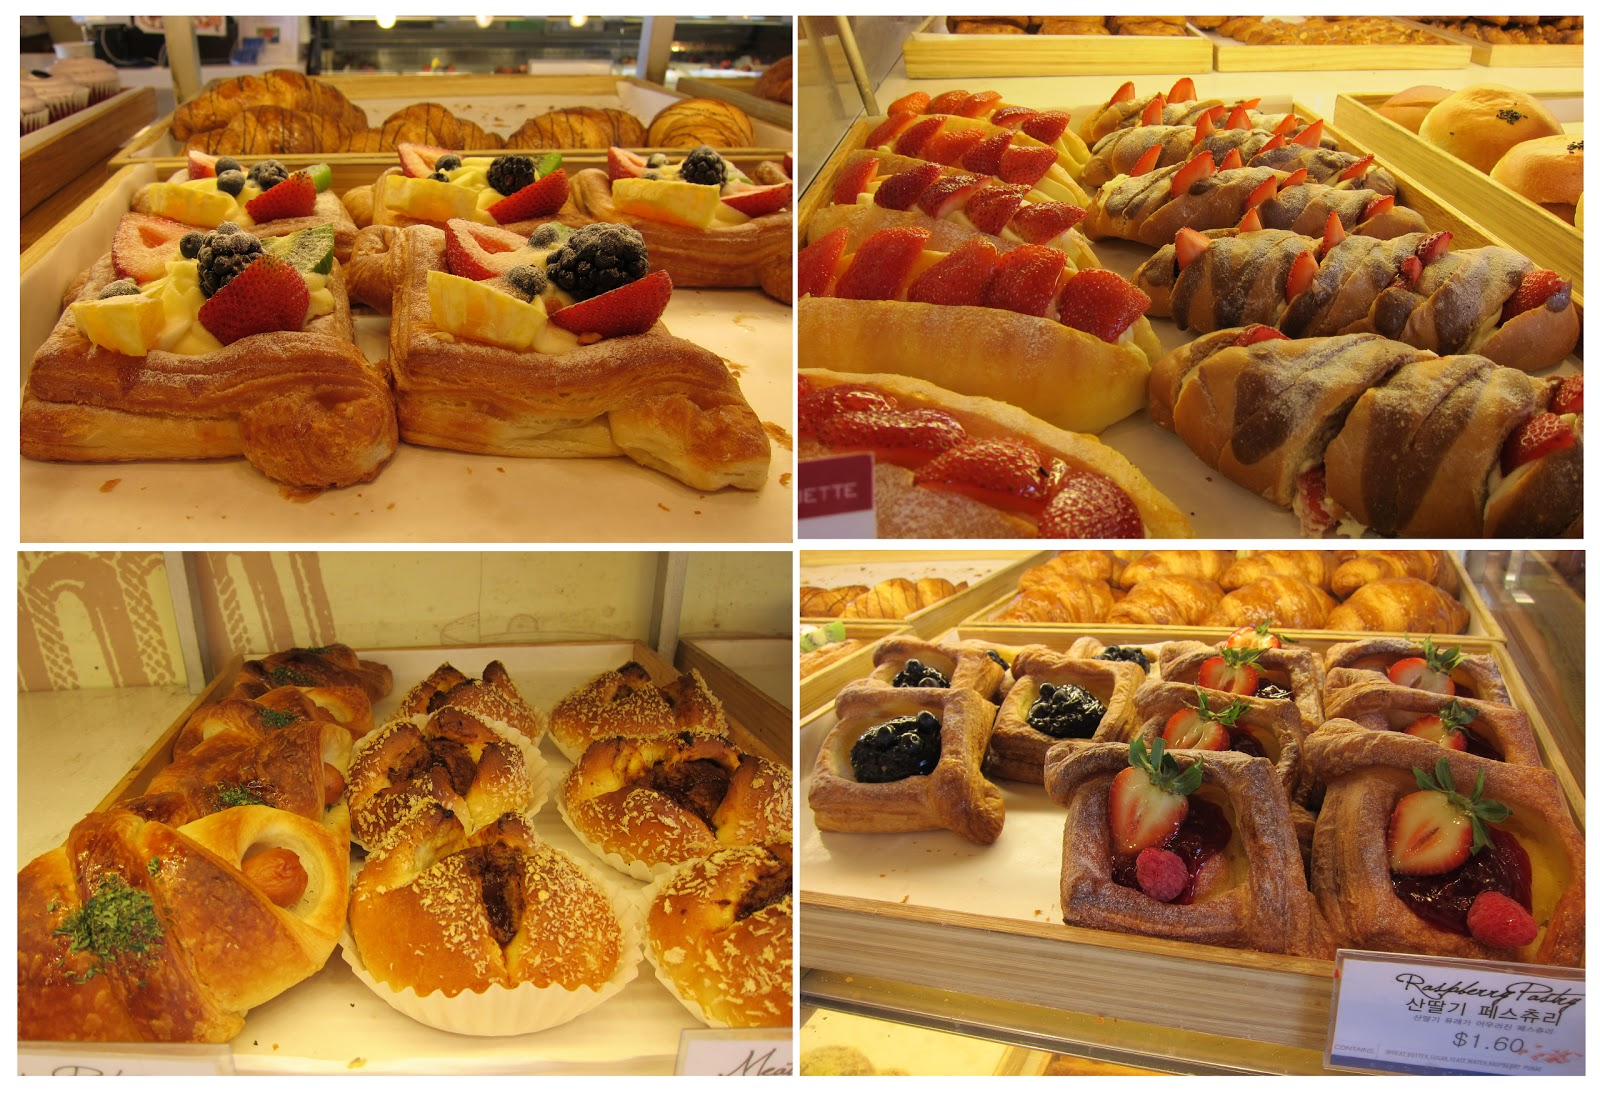 Paris Pastries Bakery Cafe Rancho Cucamonga Ca